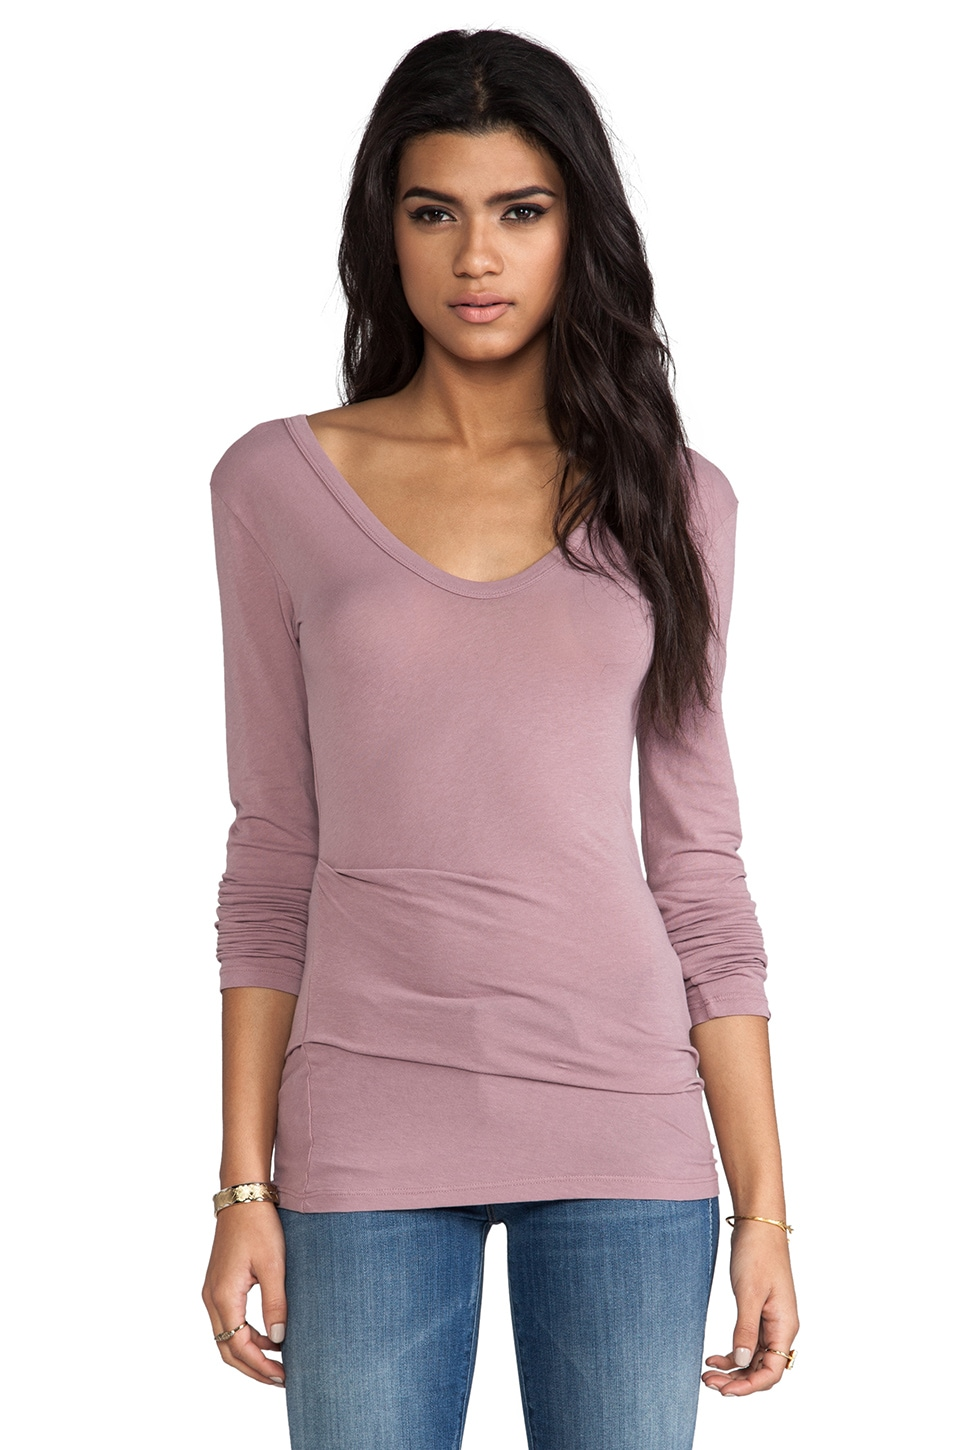 James Perse Tucked Double V Tee in Wild Rose